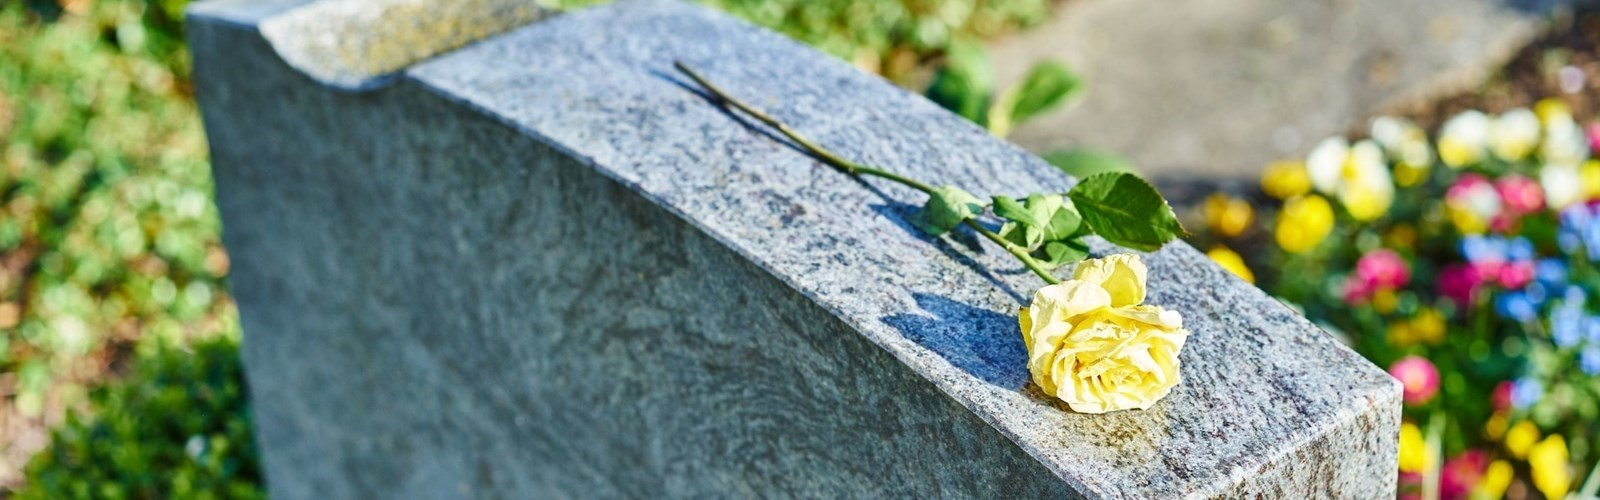 Yellow rose resting on tombstone